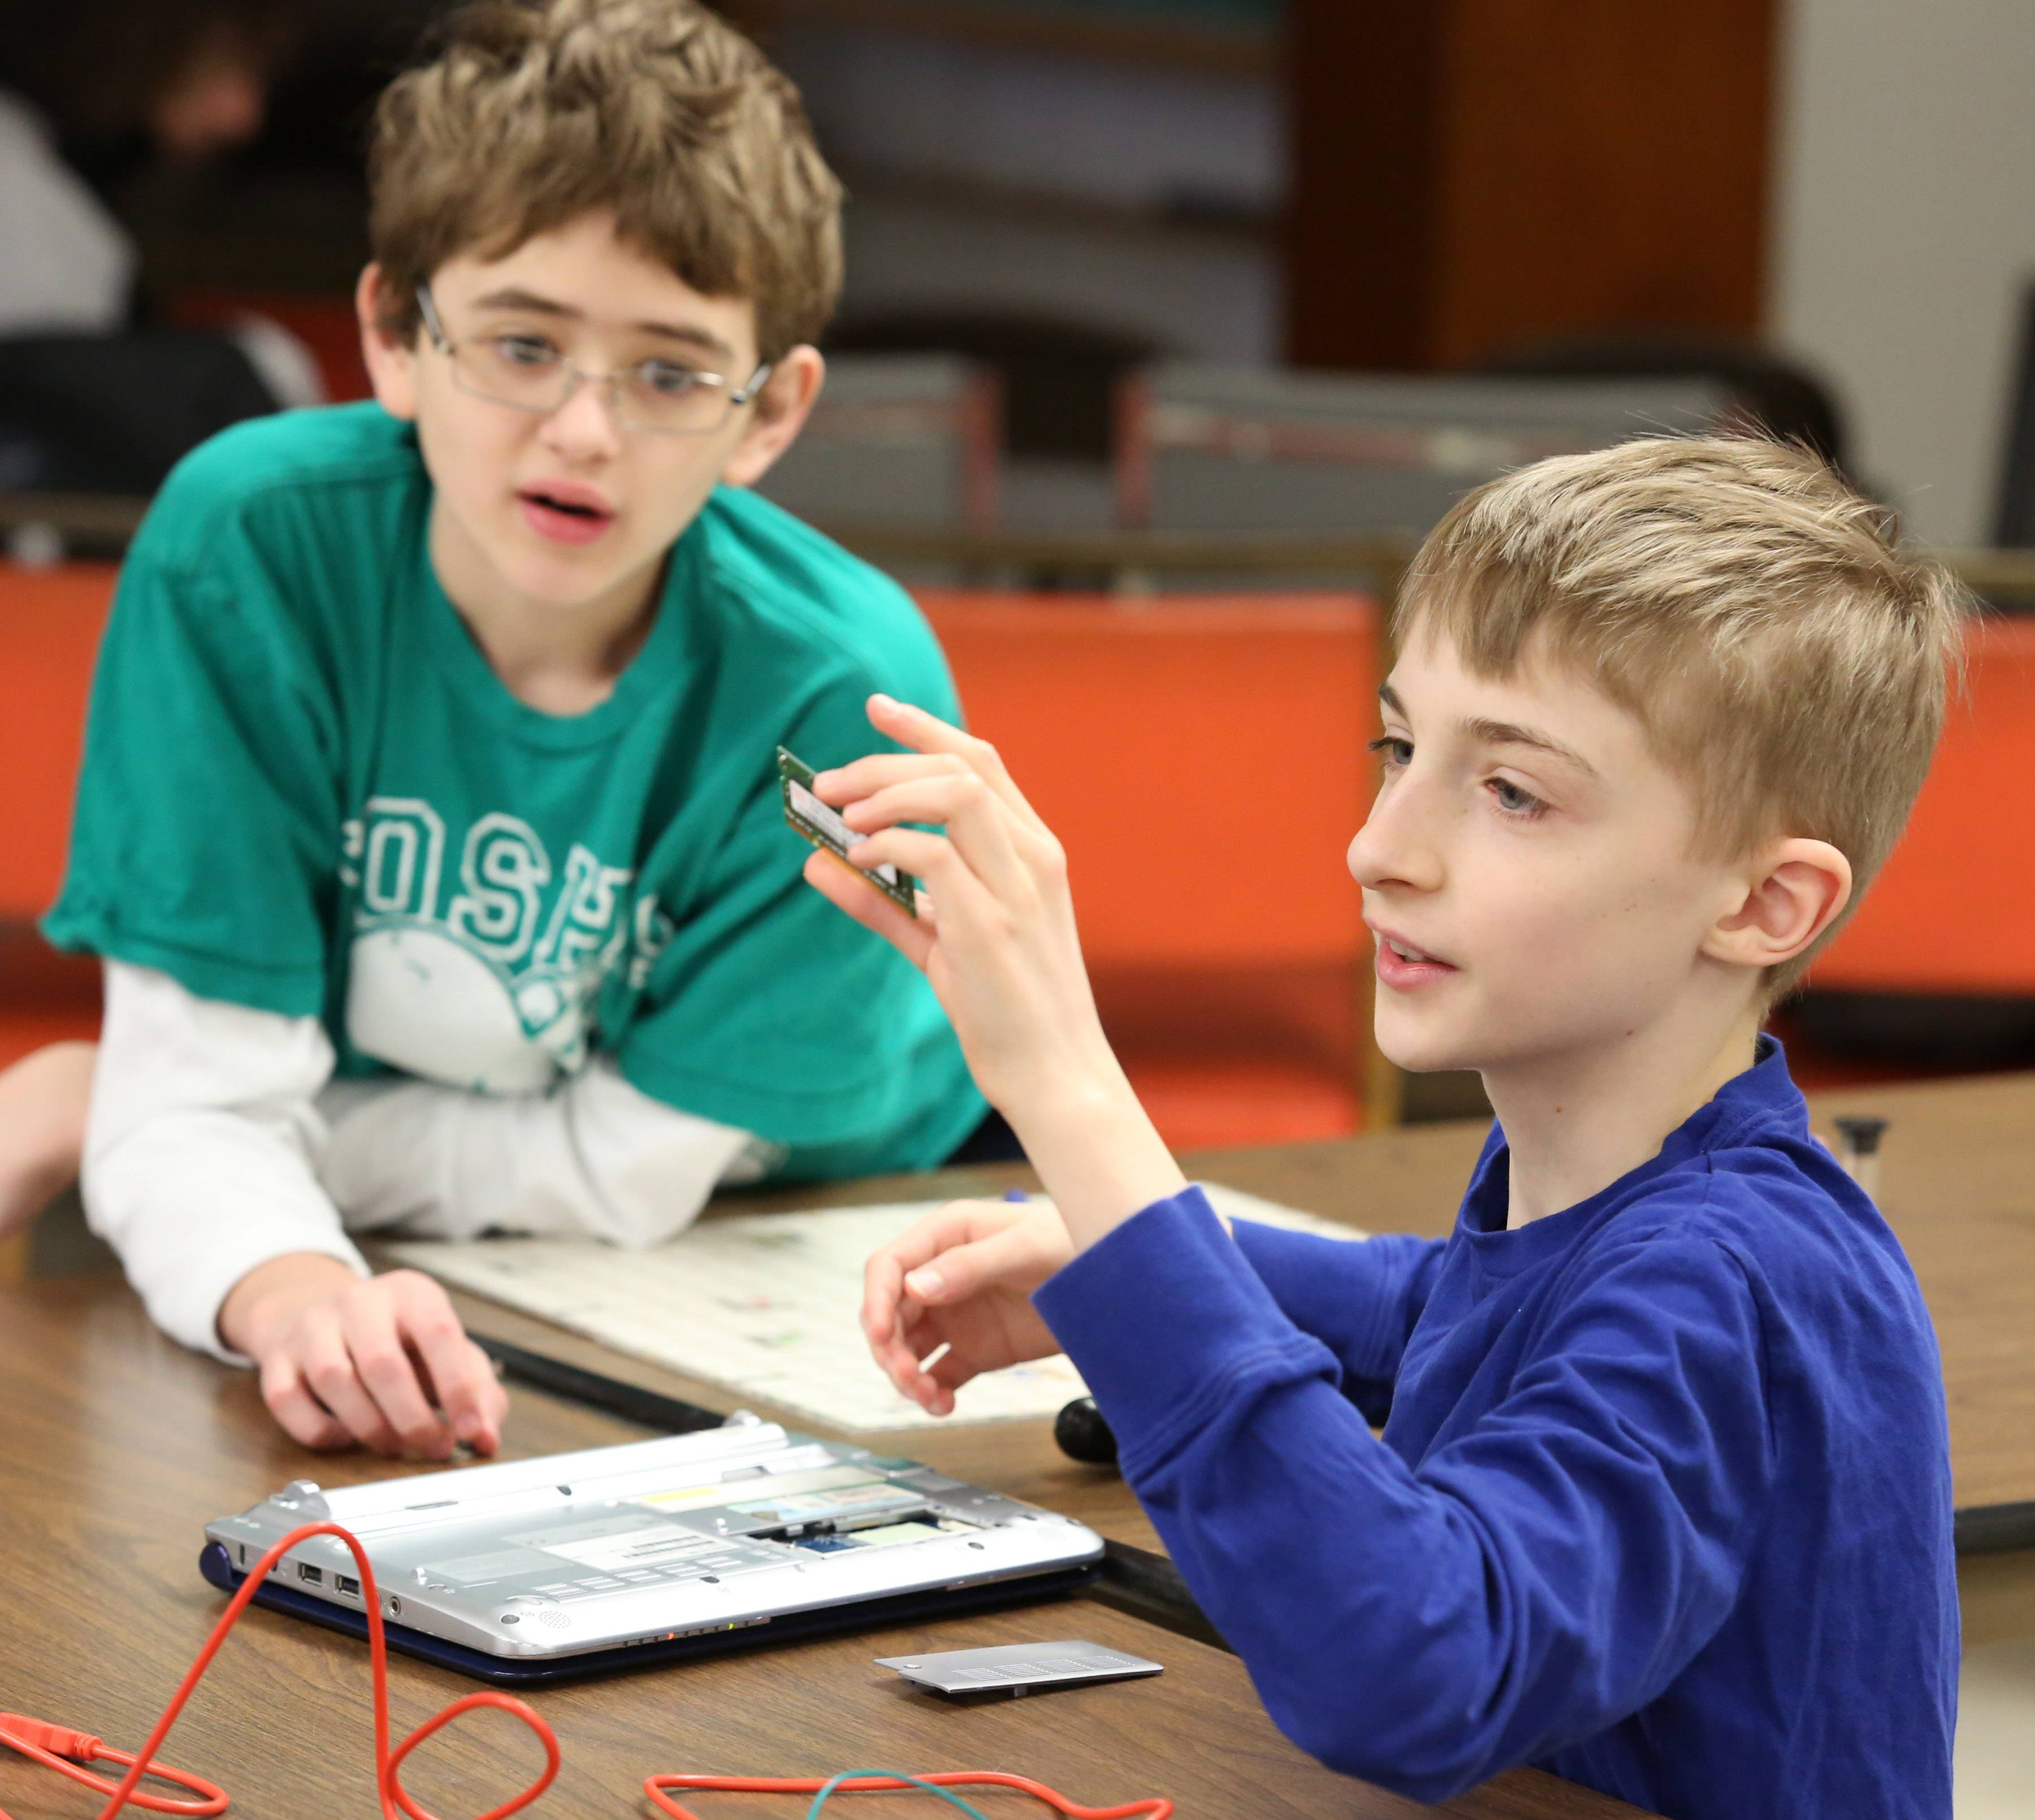 Sam Jaffe, 13, left, of Glenview, left, is surprised to see Andy Merrill remove a small electrical board from his laptop during a Curiosity Hacked Guild meeting at Central United Methodist Church in Skokie.